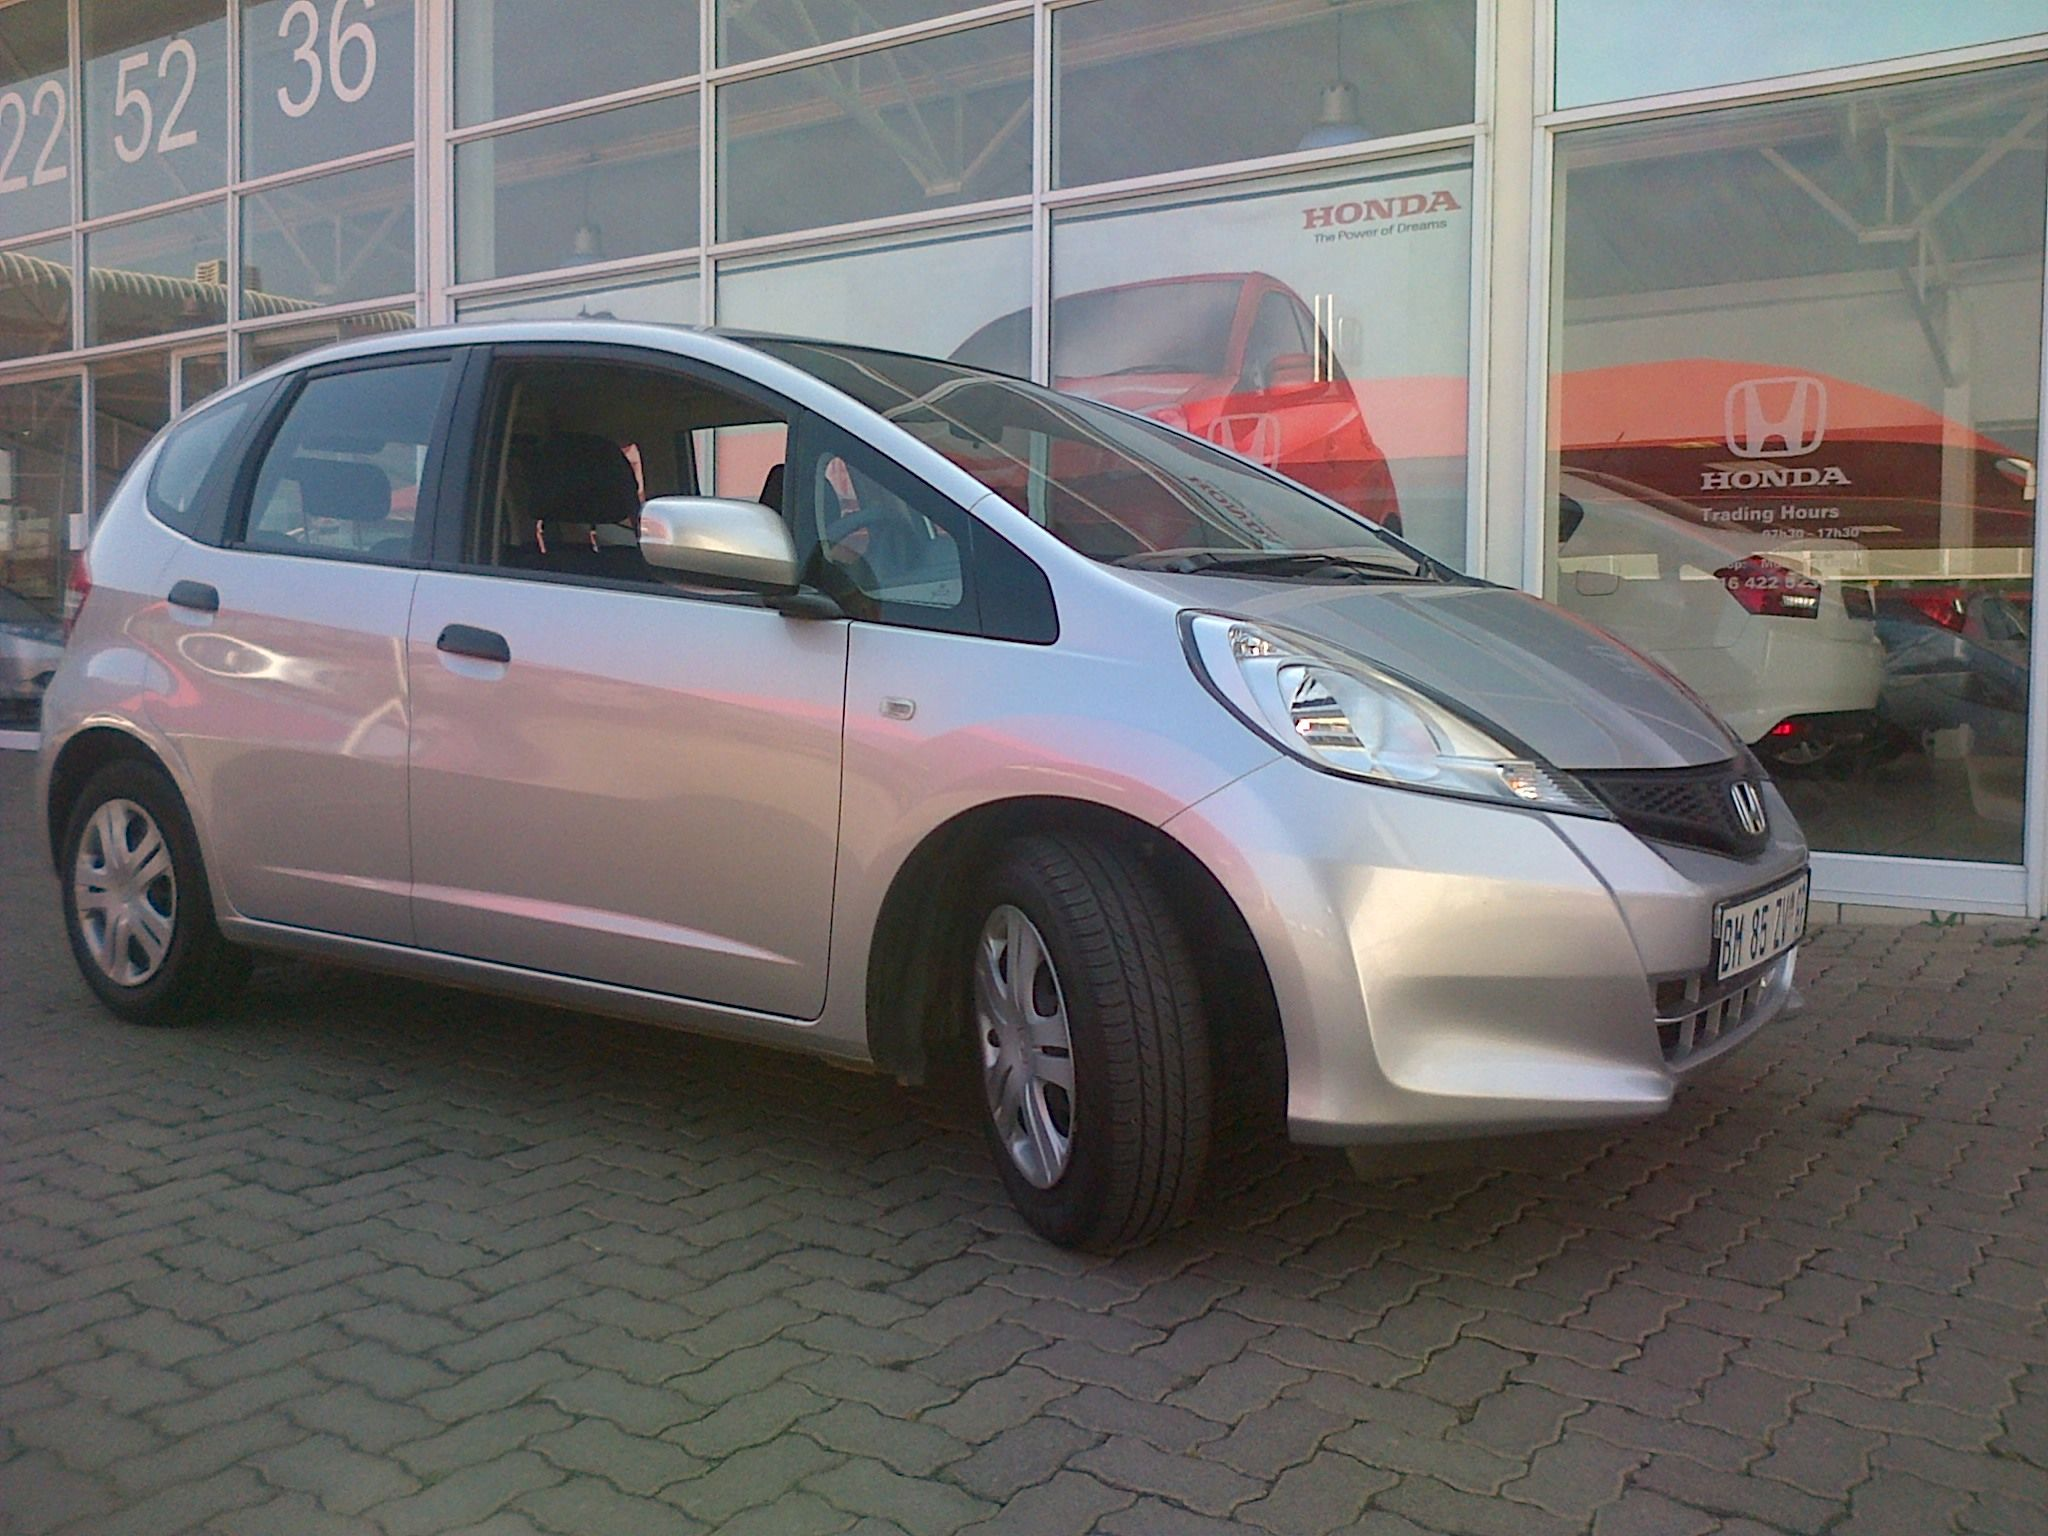 User Guide · 2011 HONDA JAZZ 1.3 TREND, MANUAL, 50000KM'S, R118900.00,  CONTACT TANYA